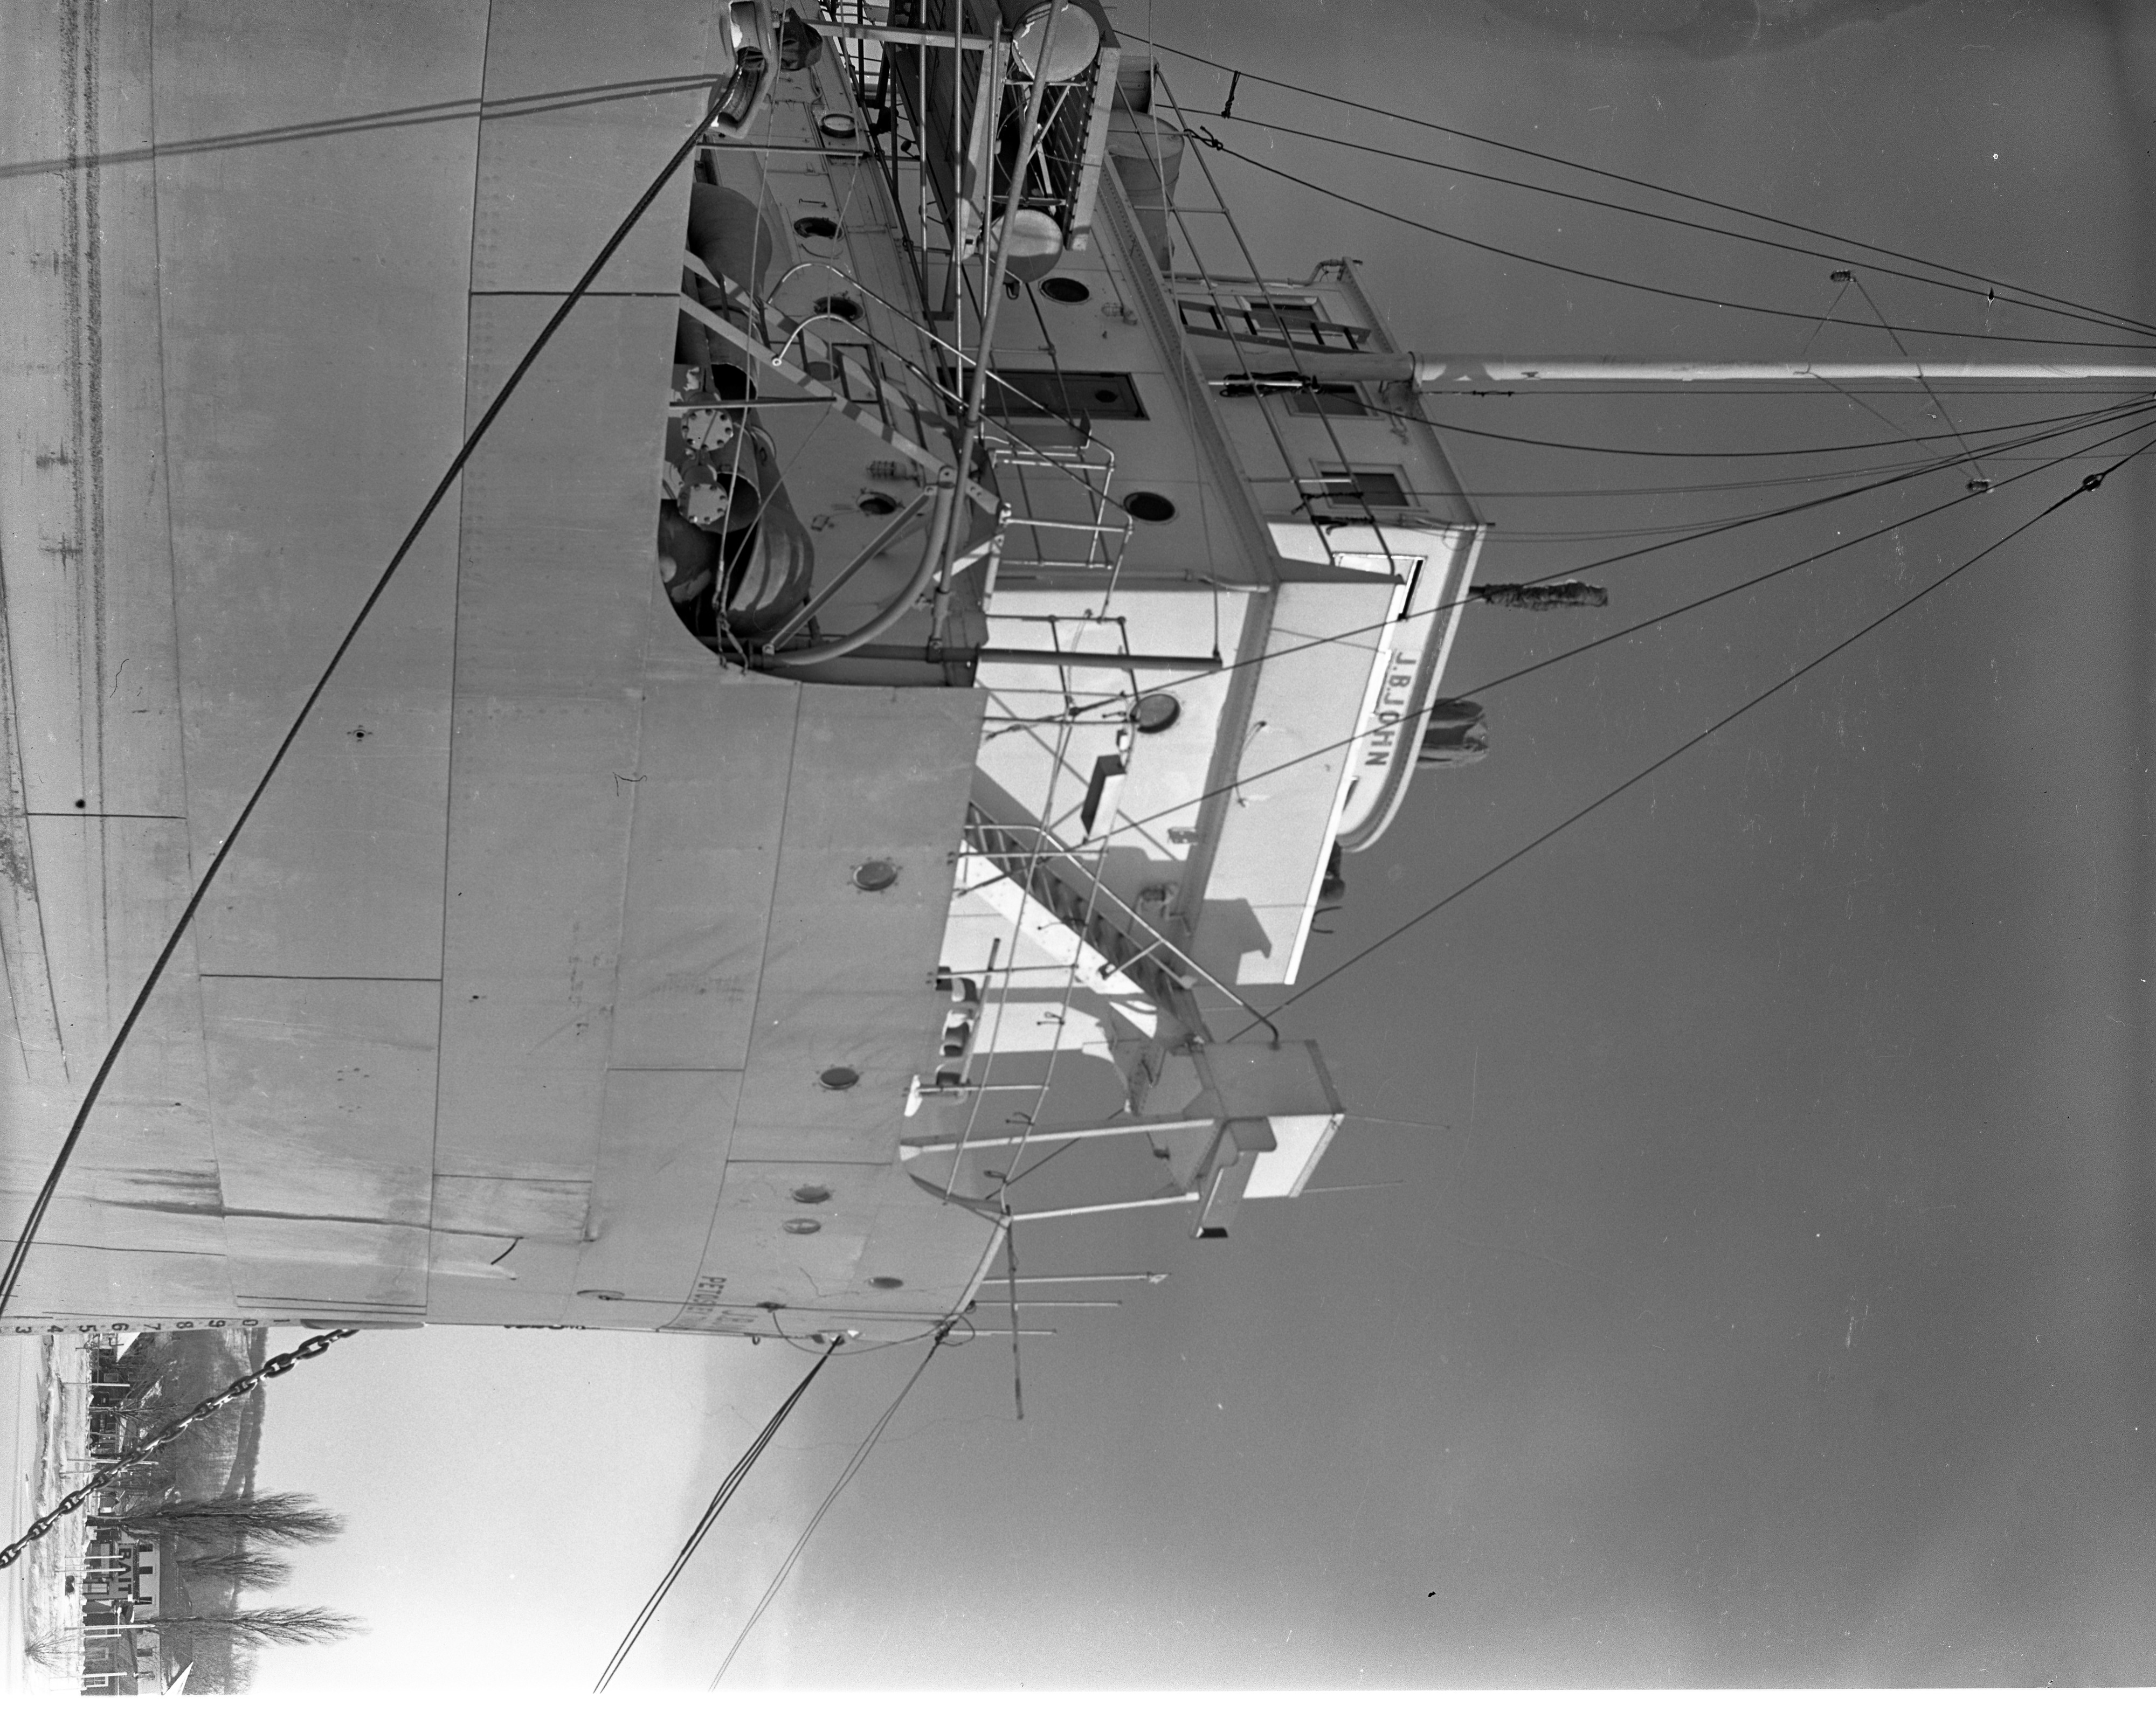 Bow Of J.B. John Freighter In Frozen Lake Charlevoix, January 1940 image